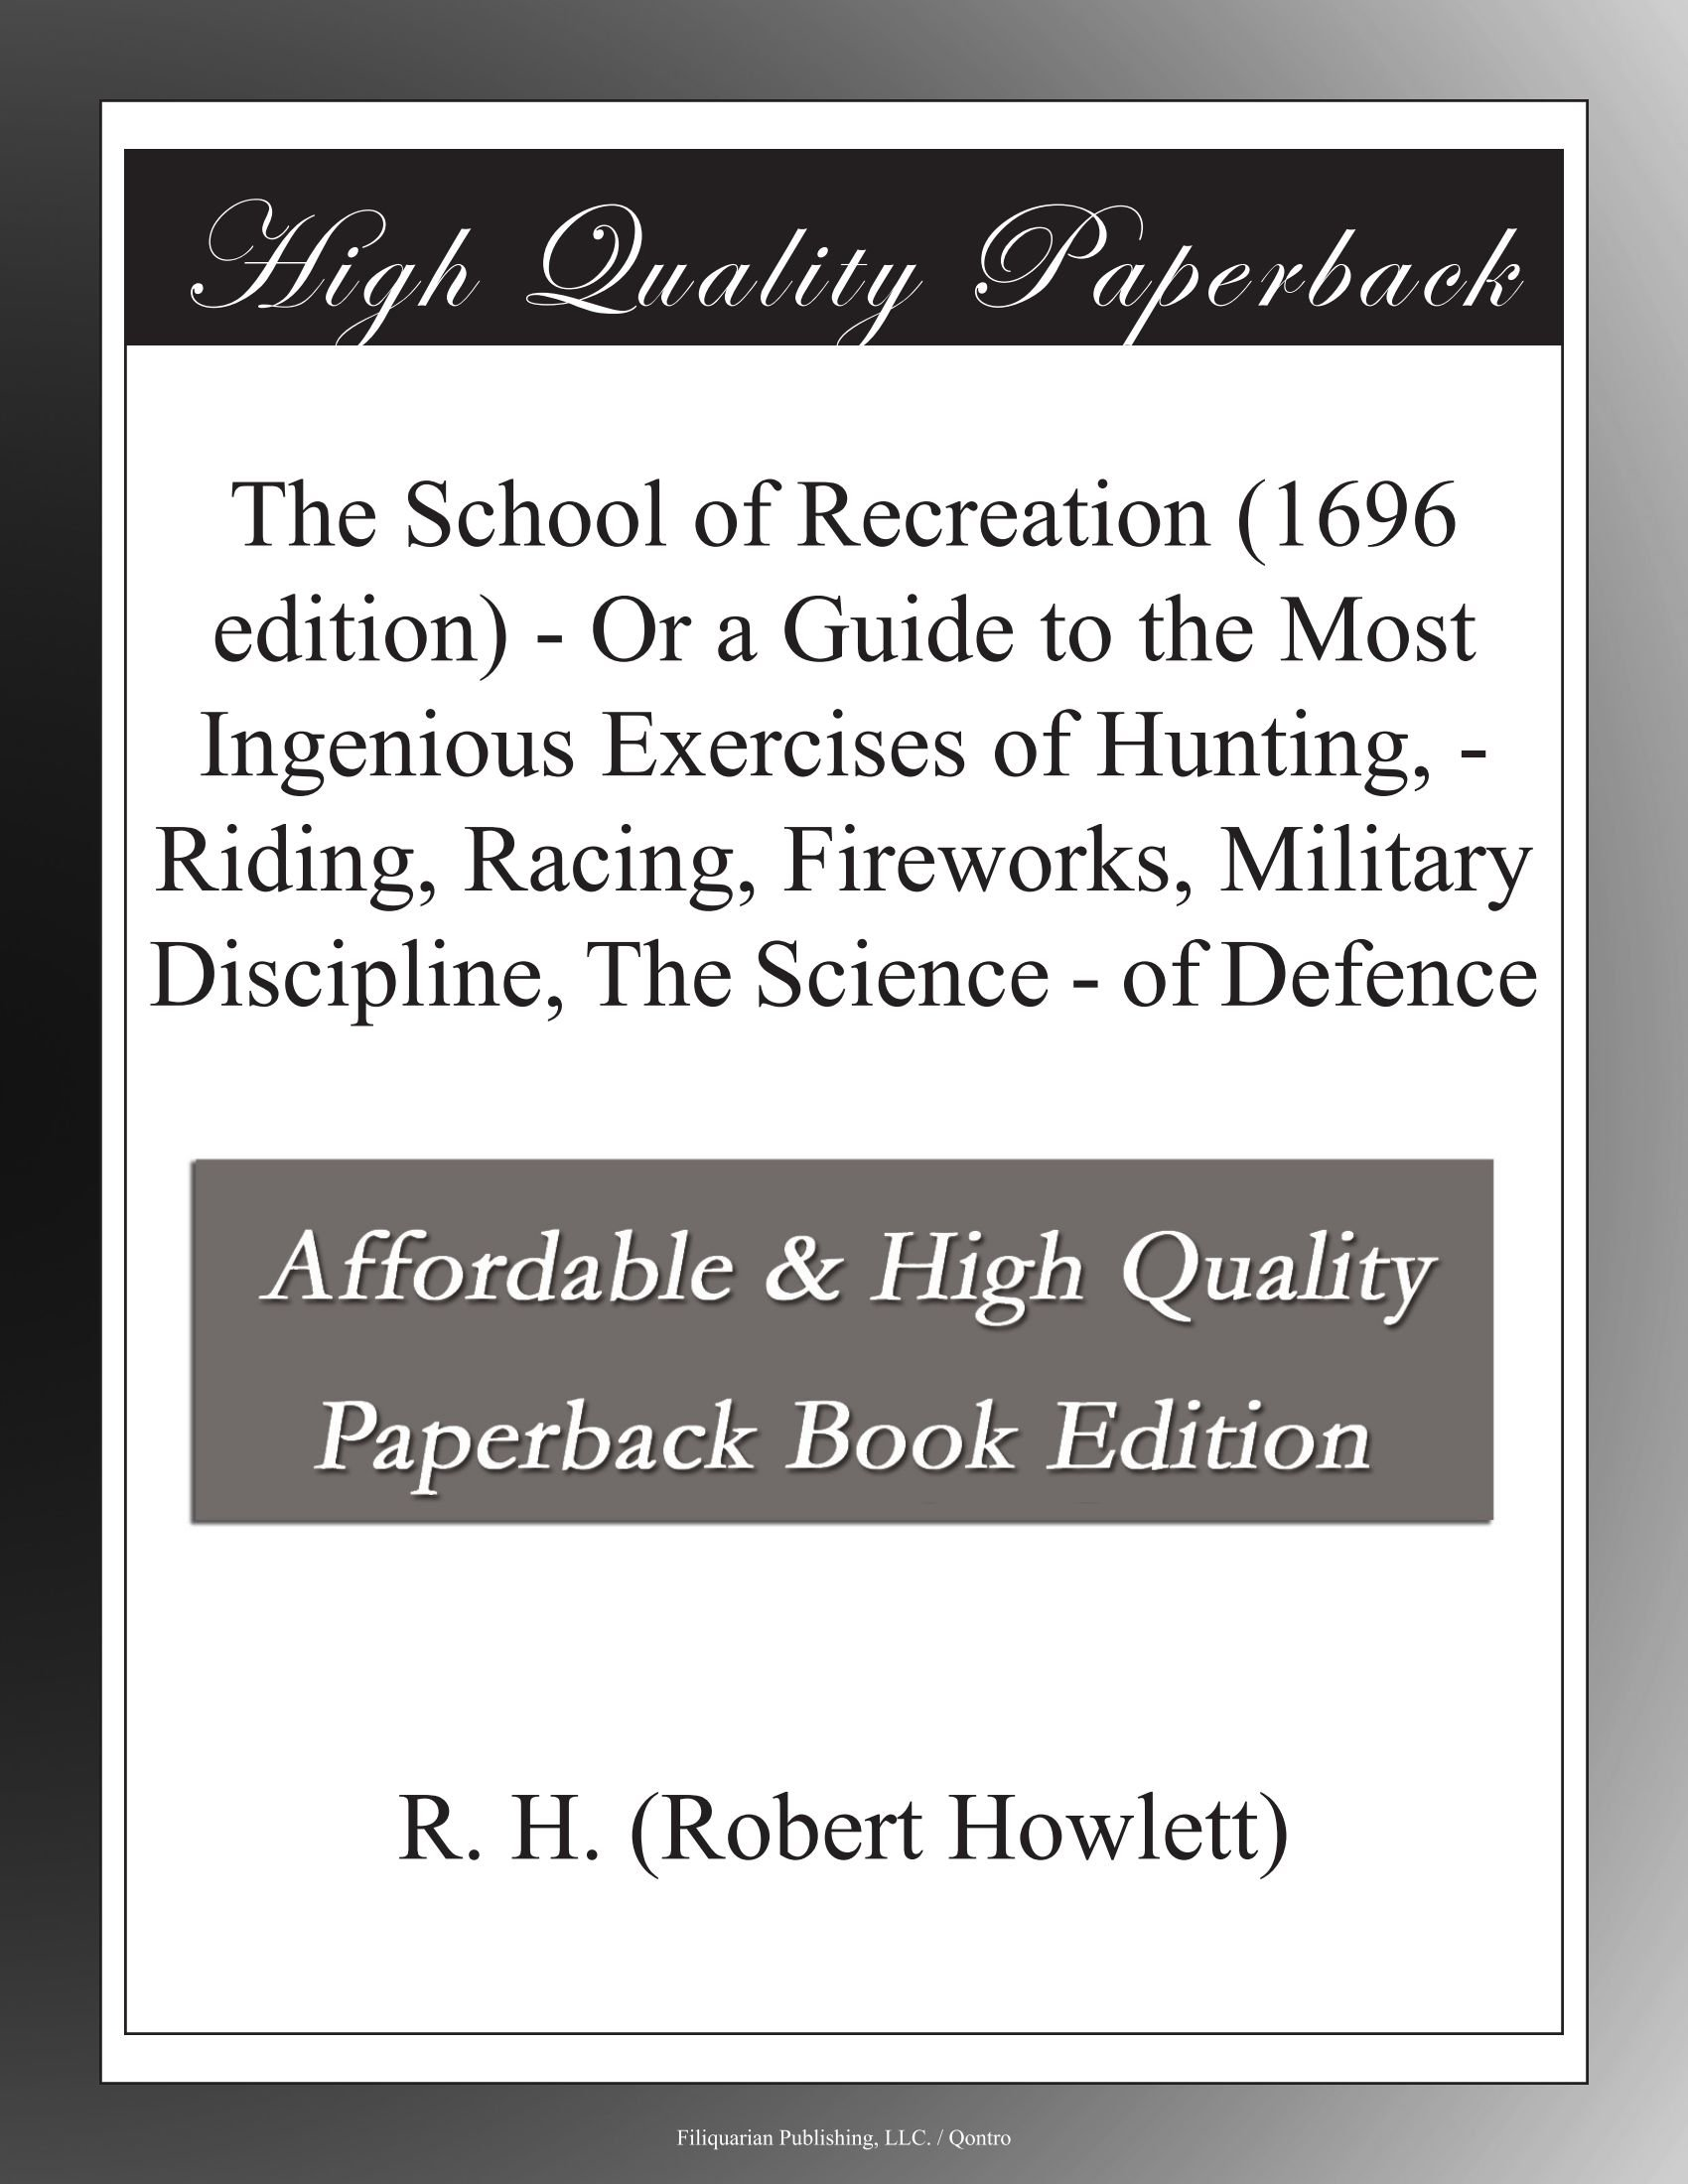 Read Online The School of Recreation (1696 edition) - Or a Guide to the Most Ingenious Exercises of Hunting, - Riding, Racing, Fireworks, Military Discipline, The Science - of Defence pdf